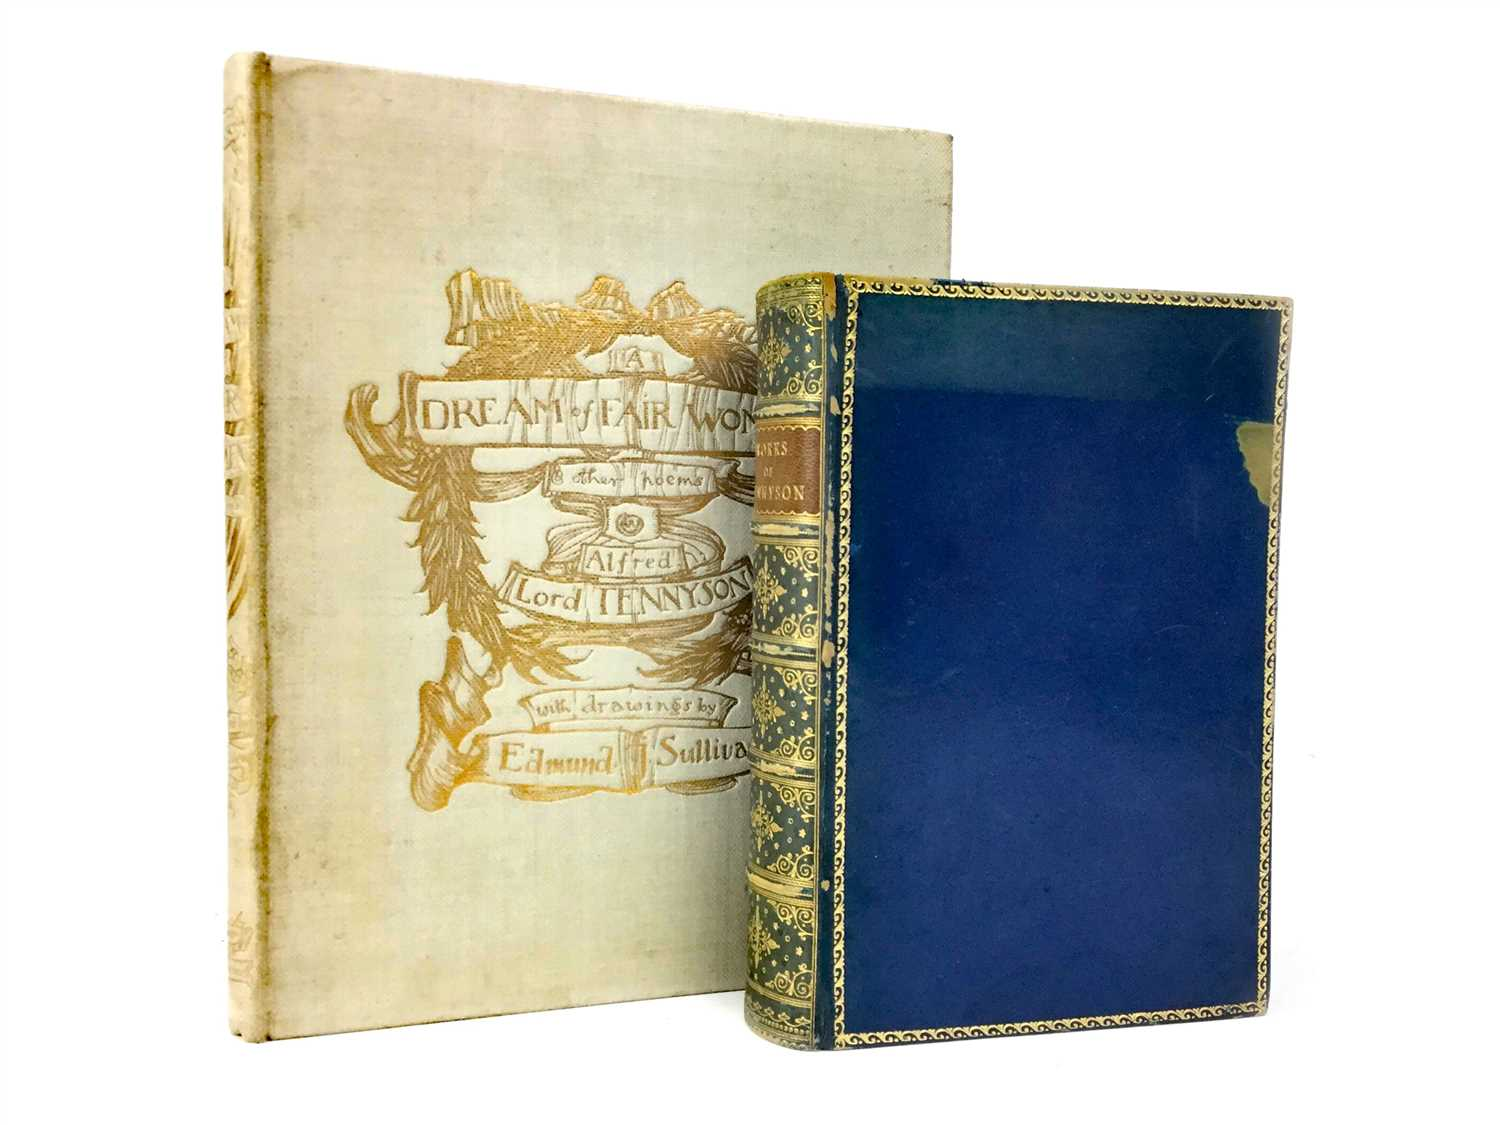 Lot 891-A DREAM OF FAIR WOMEN, BY ALFRED LORD TENNYSON, ALONG WITH THE WORKS OF TENNYSON